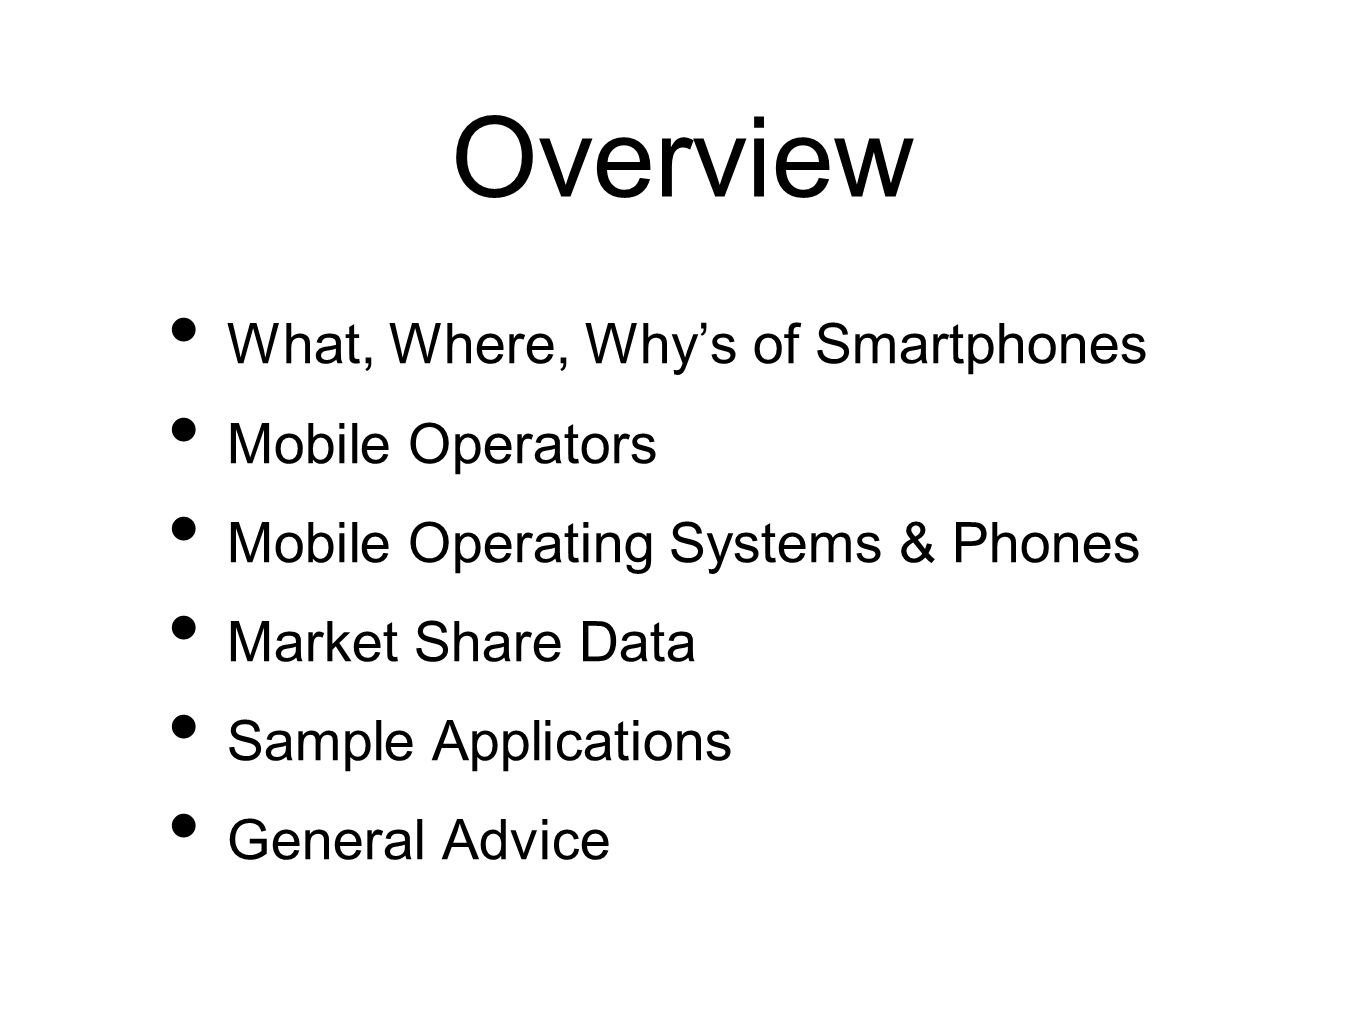 Overview What, Where, Why's of Smartphones Mobile Operators